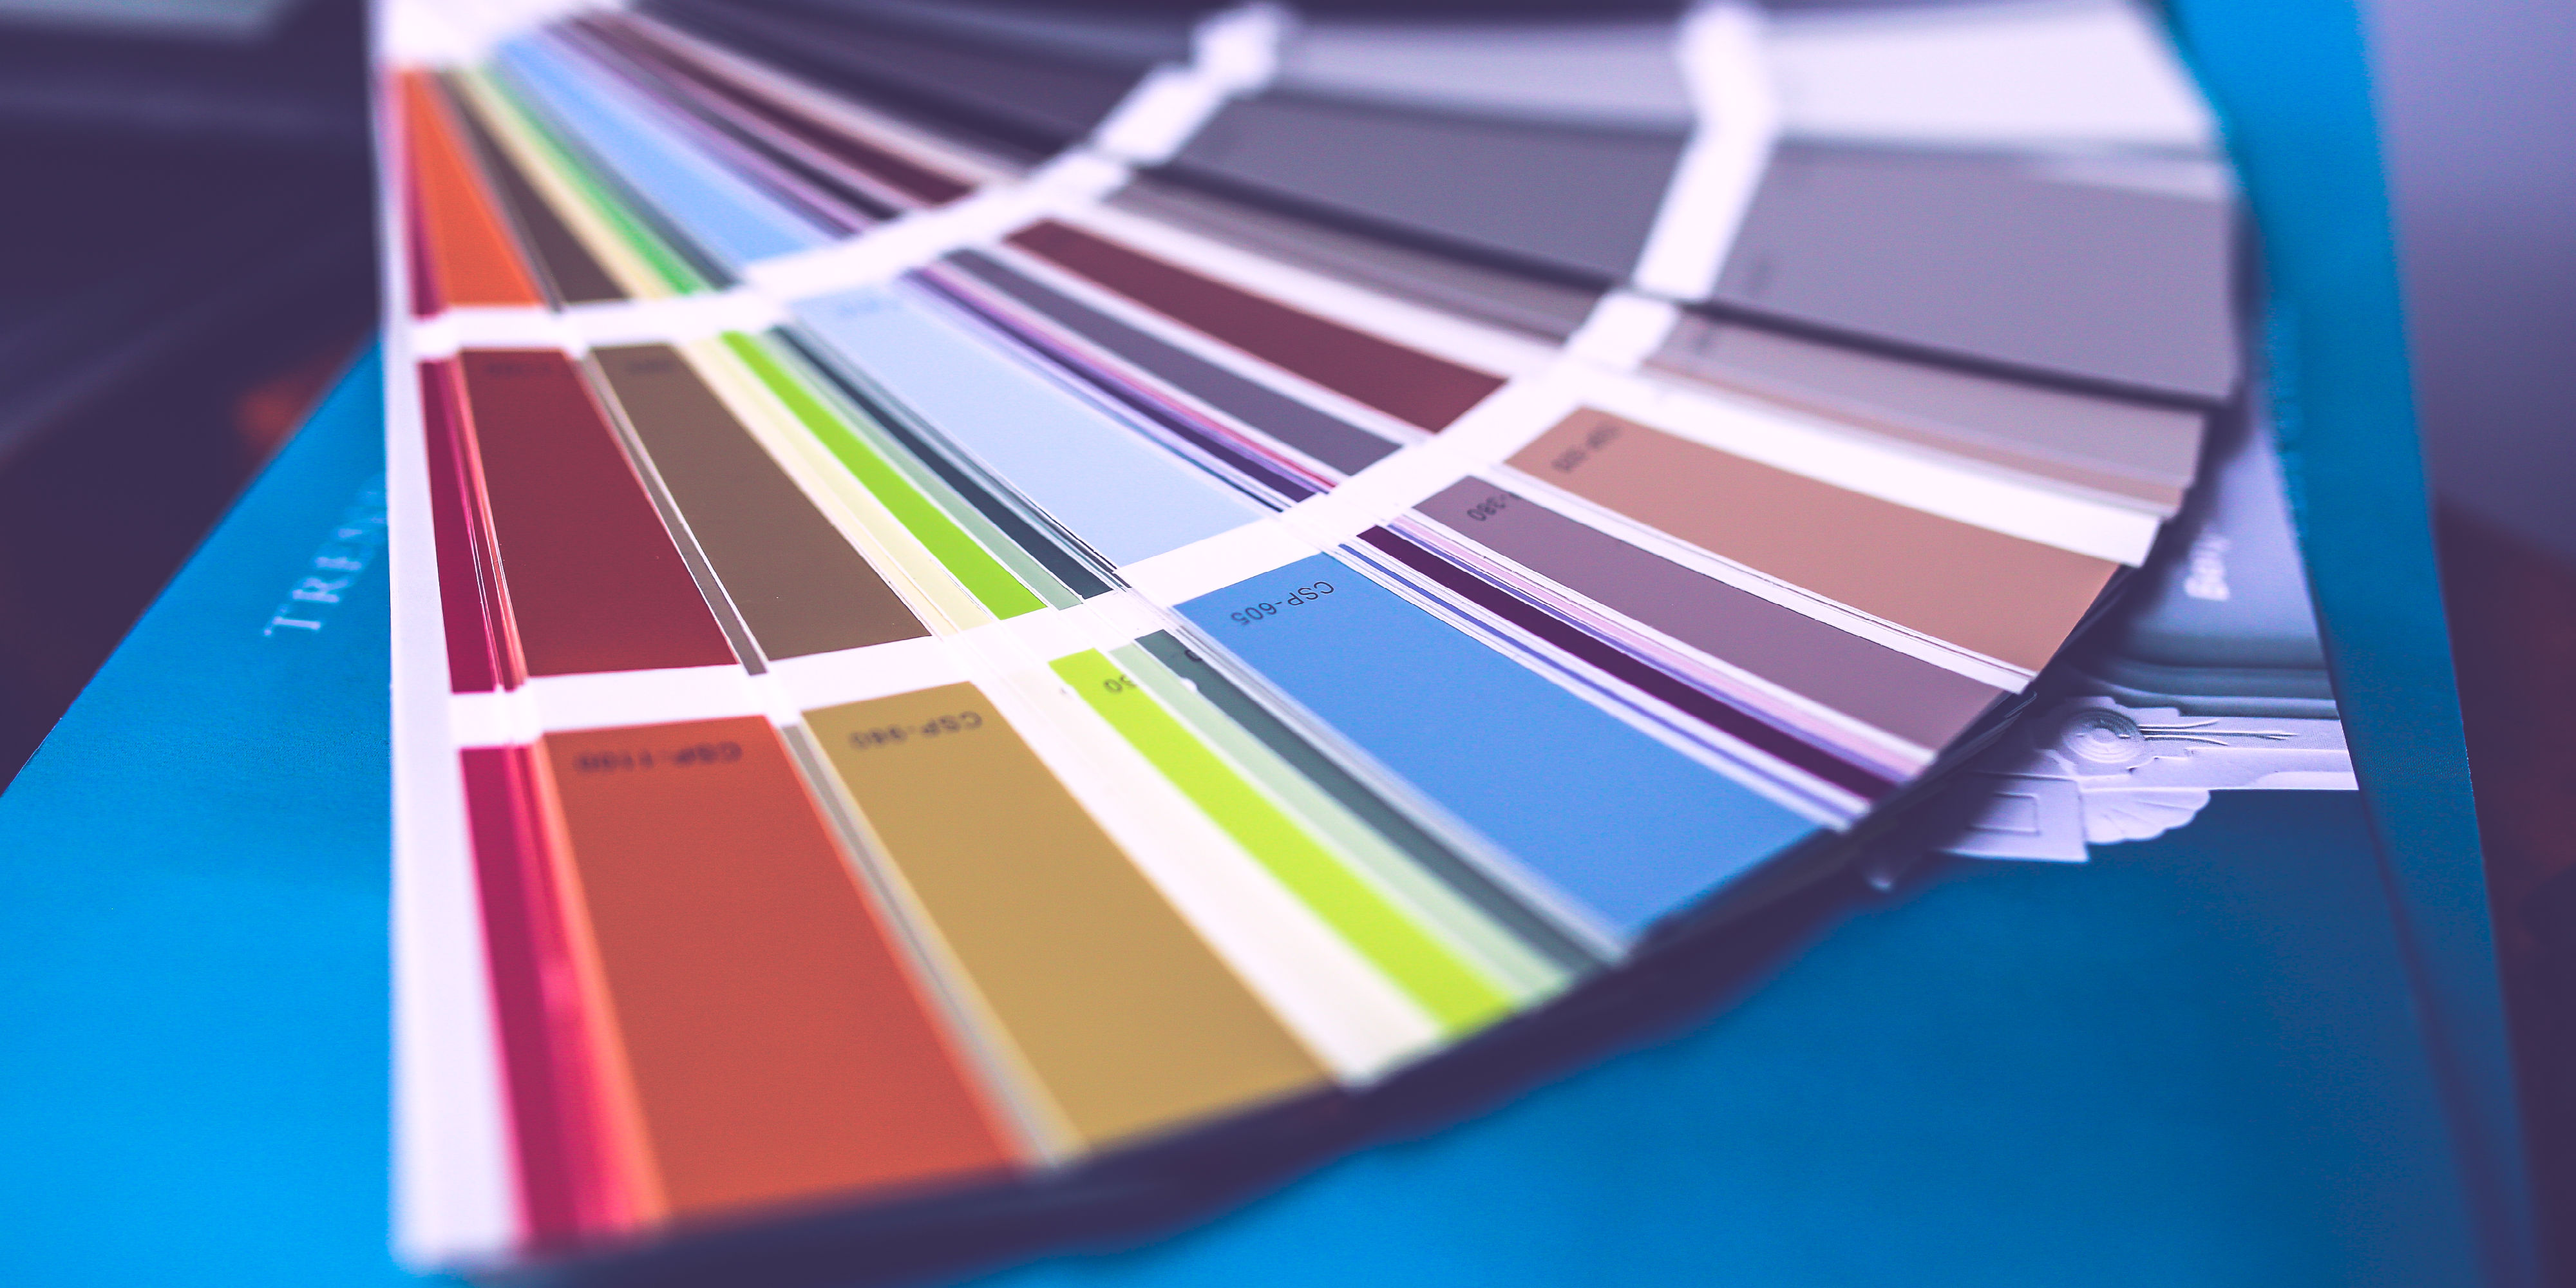 Pantone Screen Printing Colors Header Image